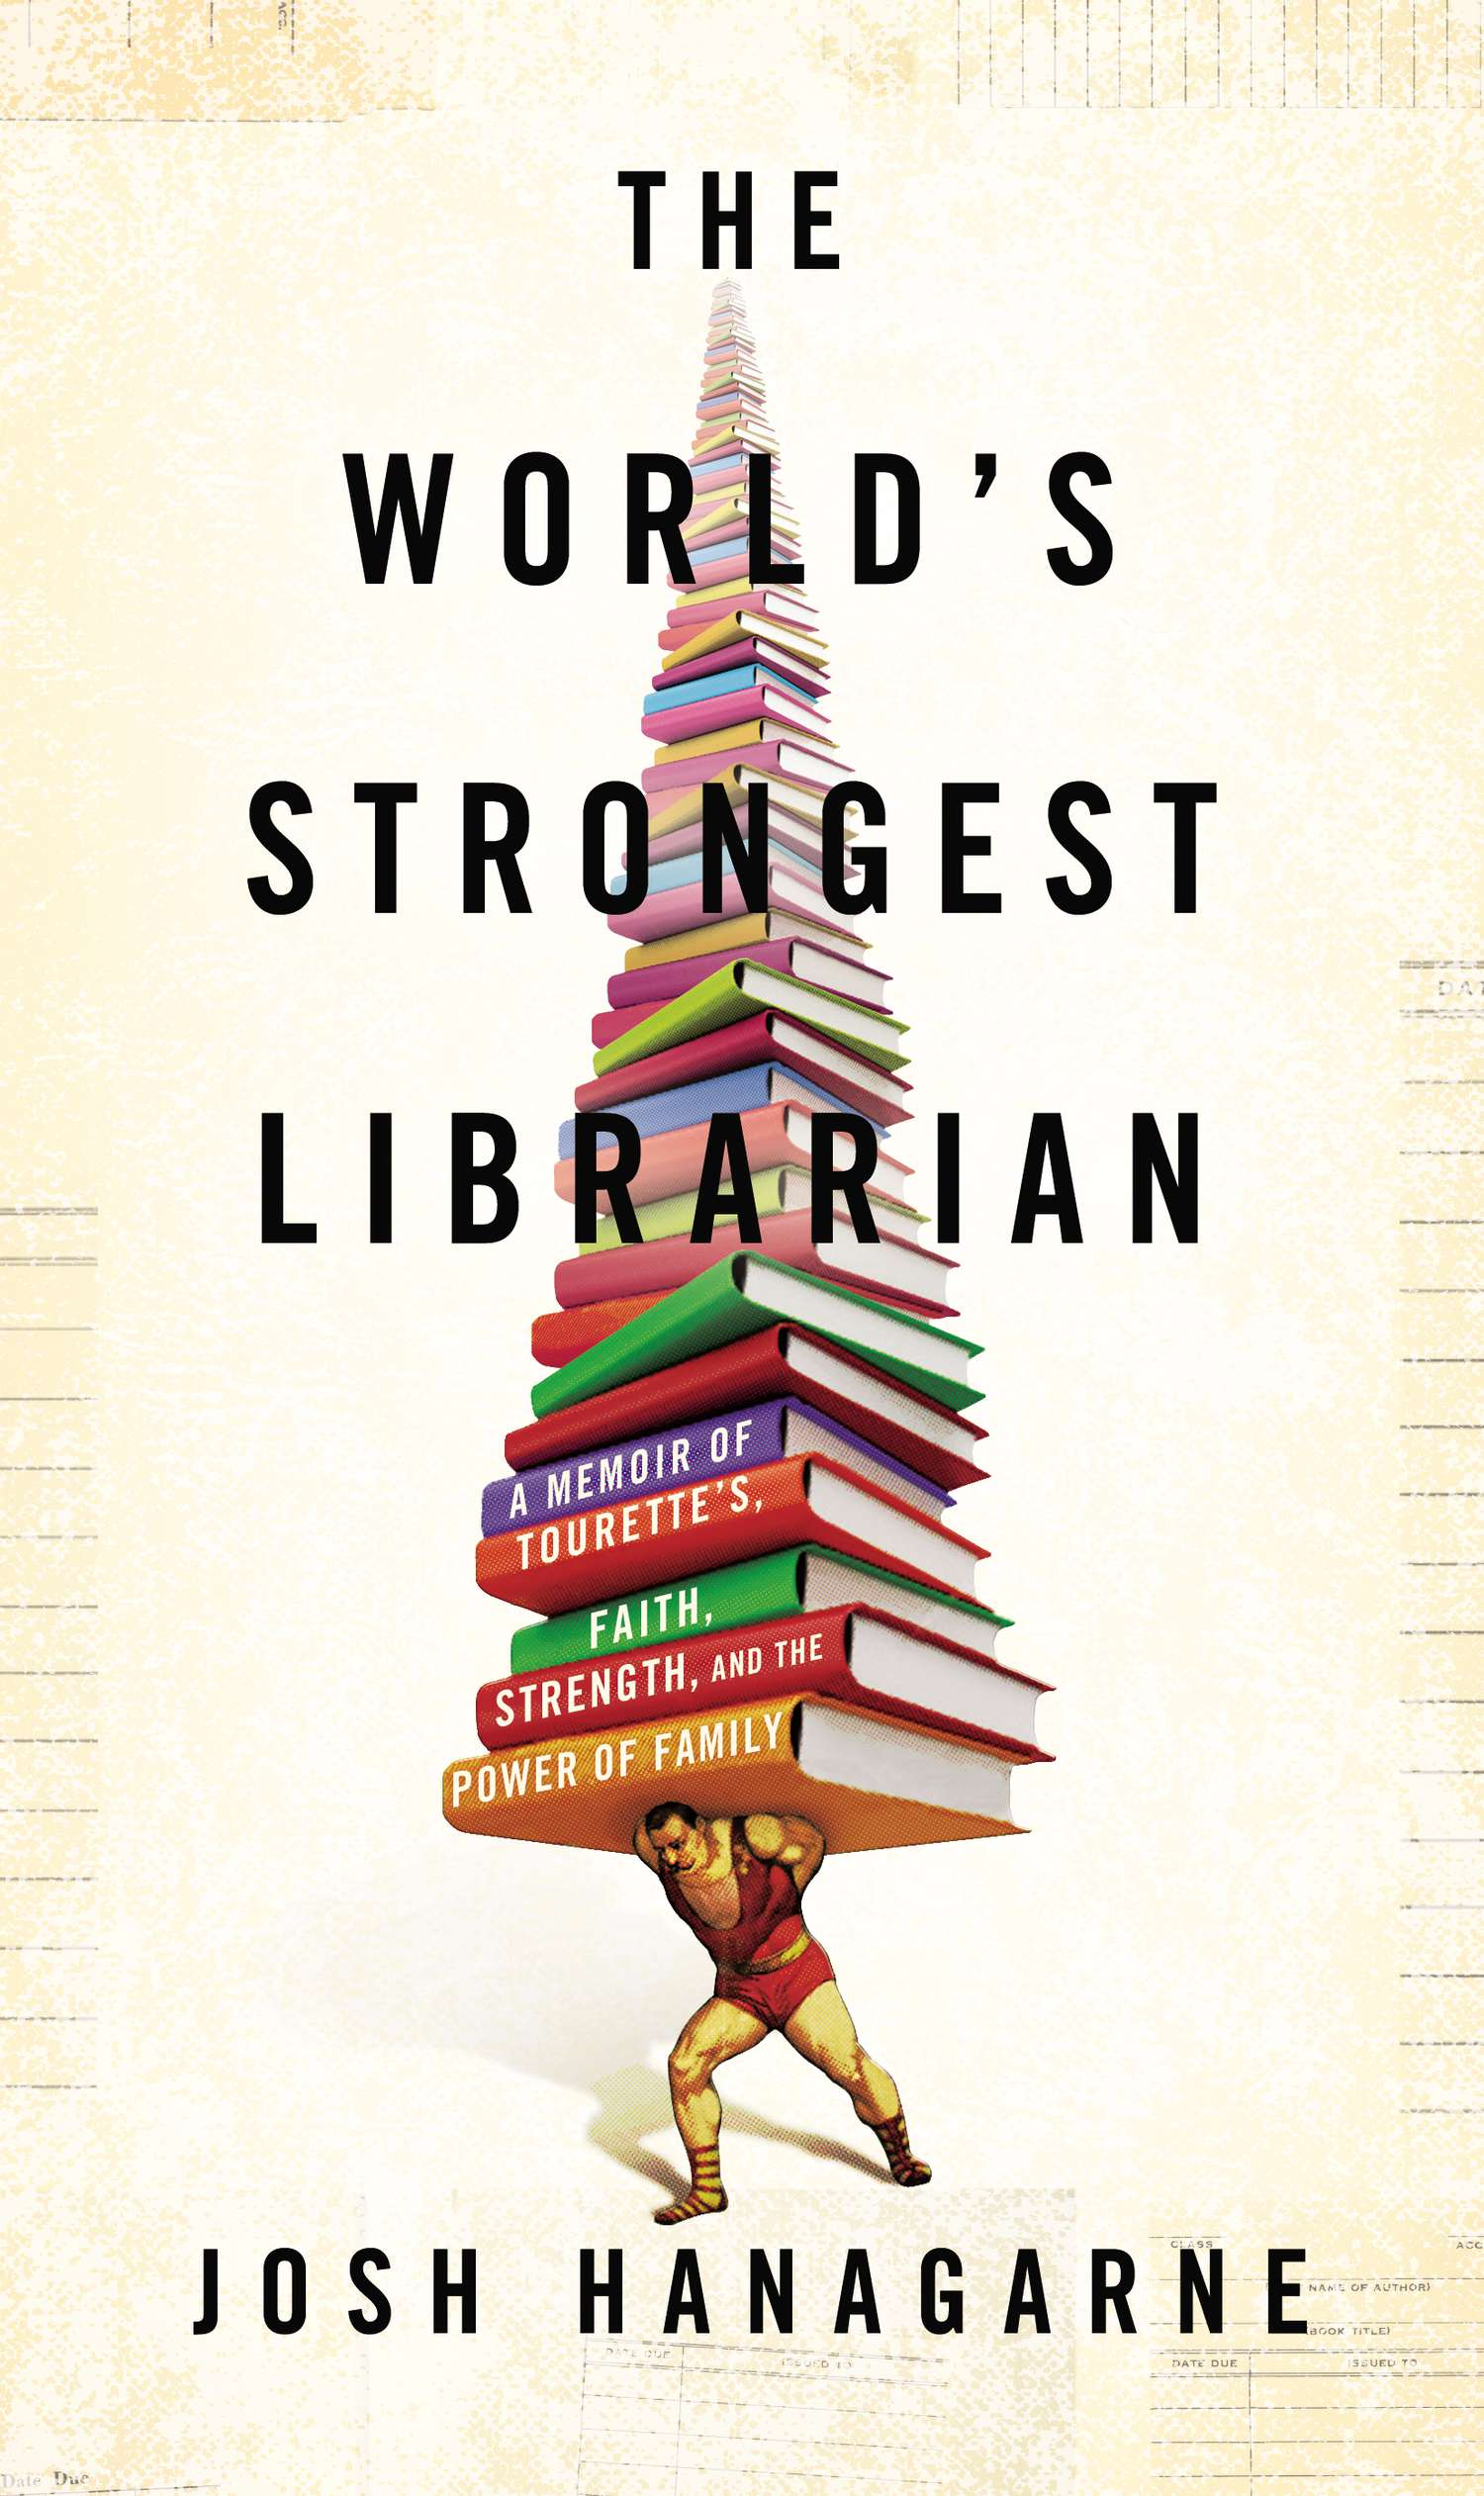 9781592407873_large_The_World's_Strongest_Librarian (1)